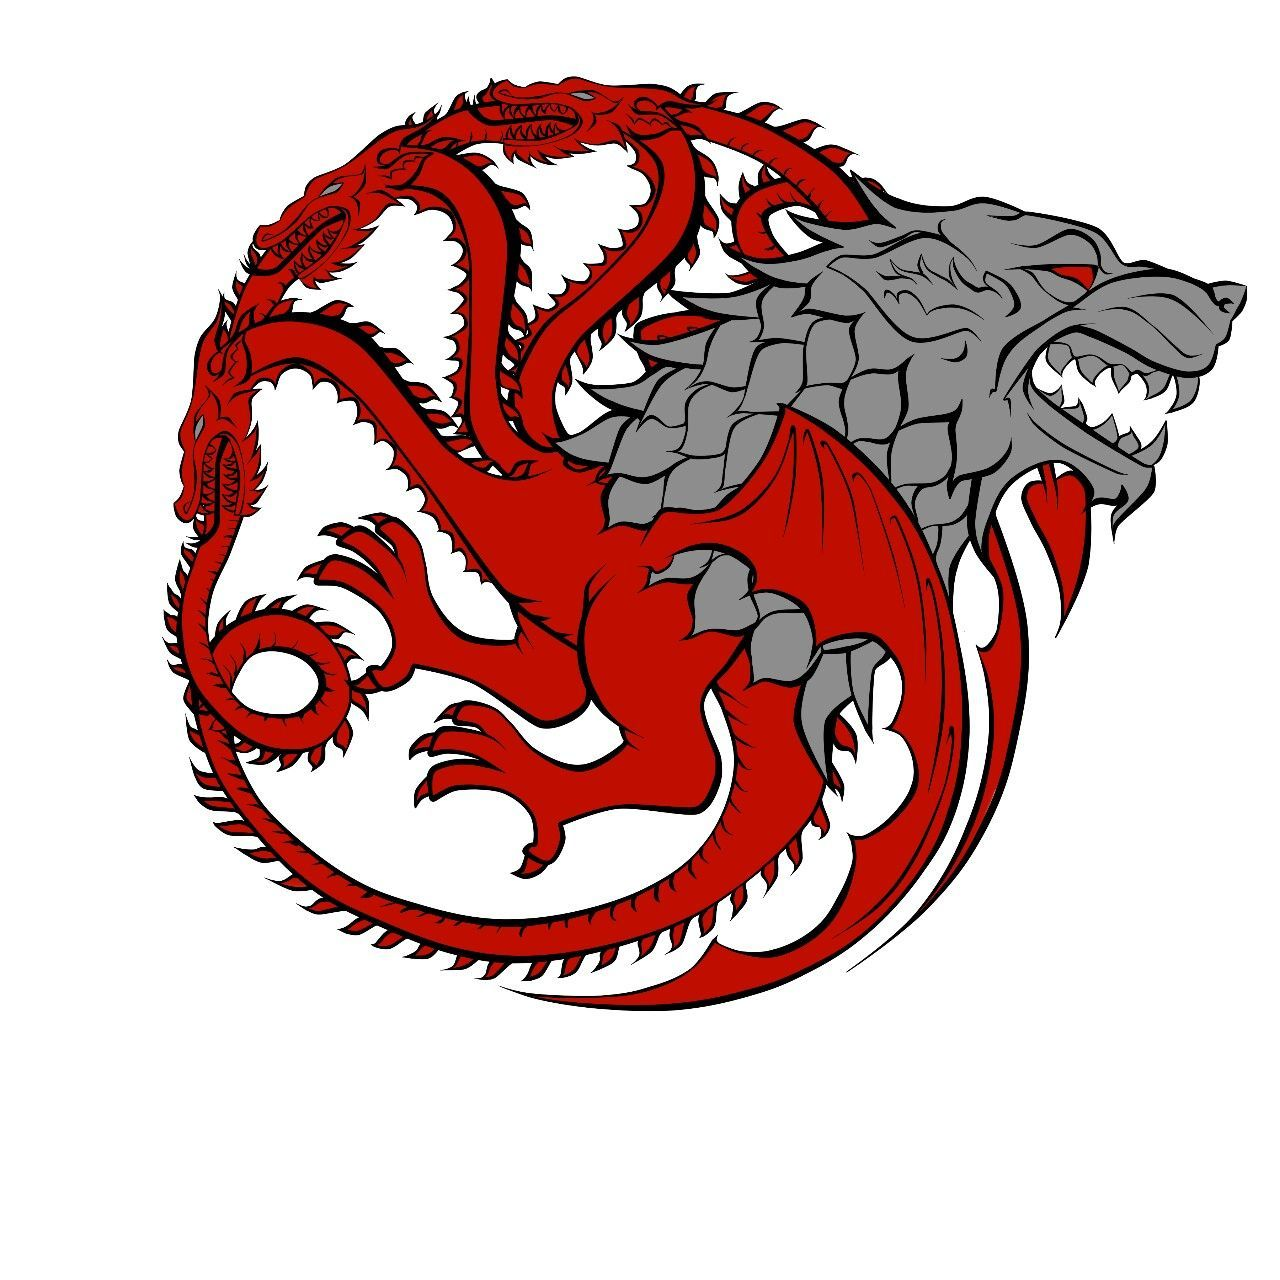 "The History of A Song of Ice & Fire -  javiersaviour: "" Starkgaryen!!! @therealjacksepticeye heard you liked Game of thrones, I love it  - #arrowtattoo #chinesedragontattoo #Fire #history #Ice #Song #targaryentattoo"